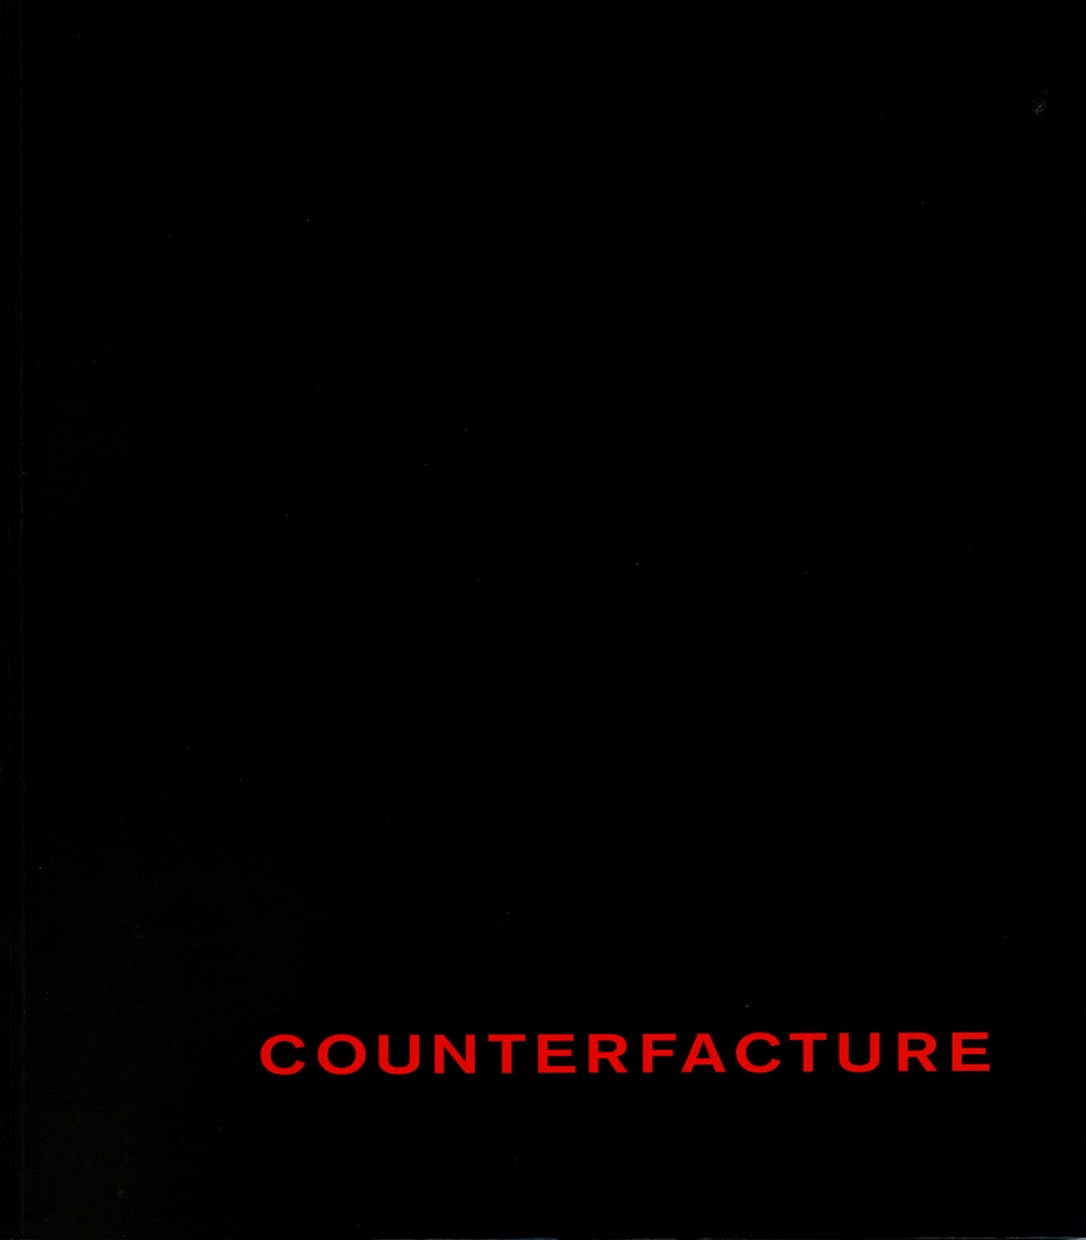 Counterfacture